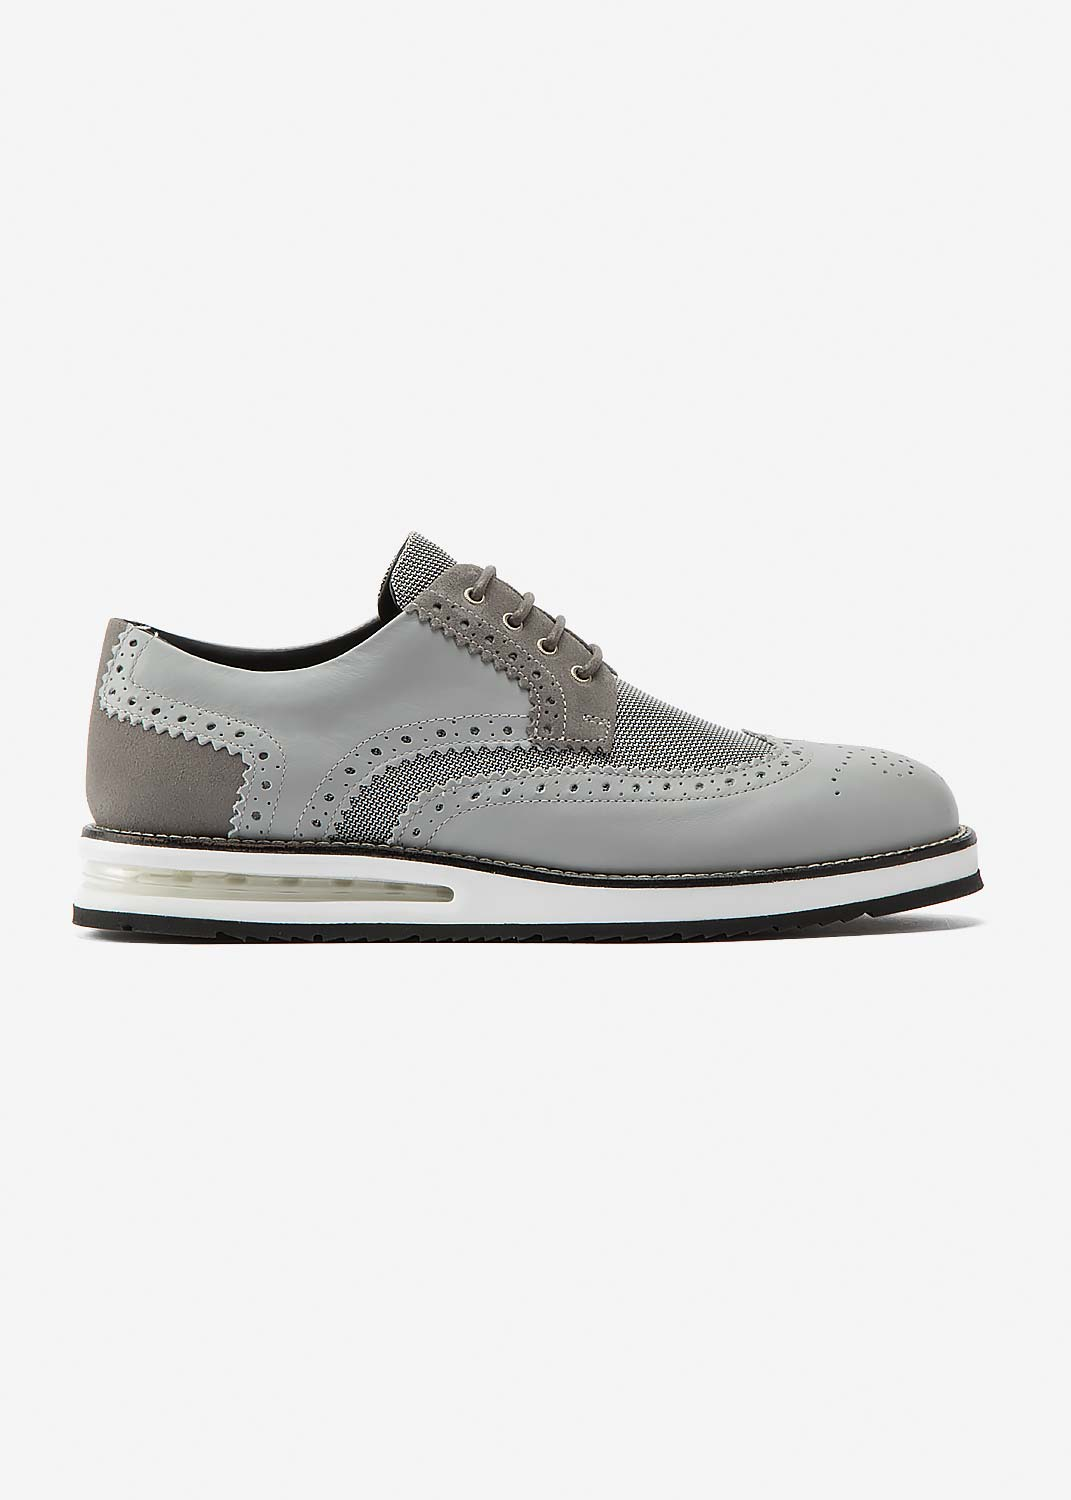 Air Brogue Grey Material Block